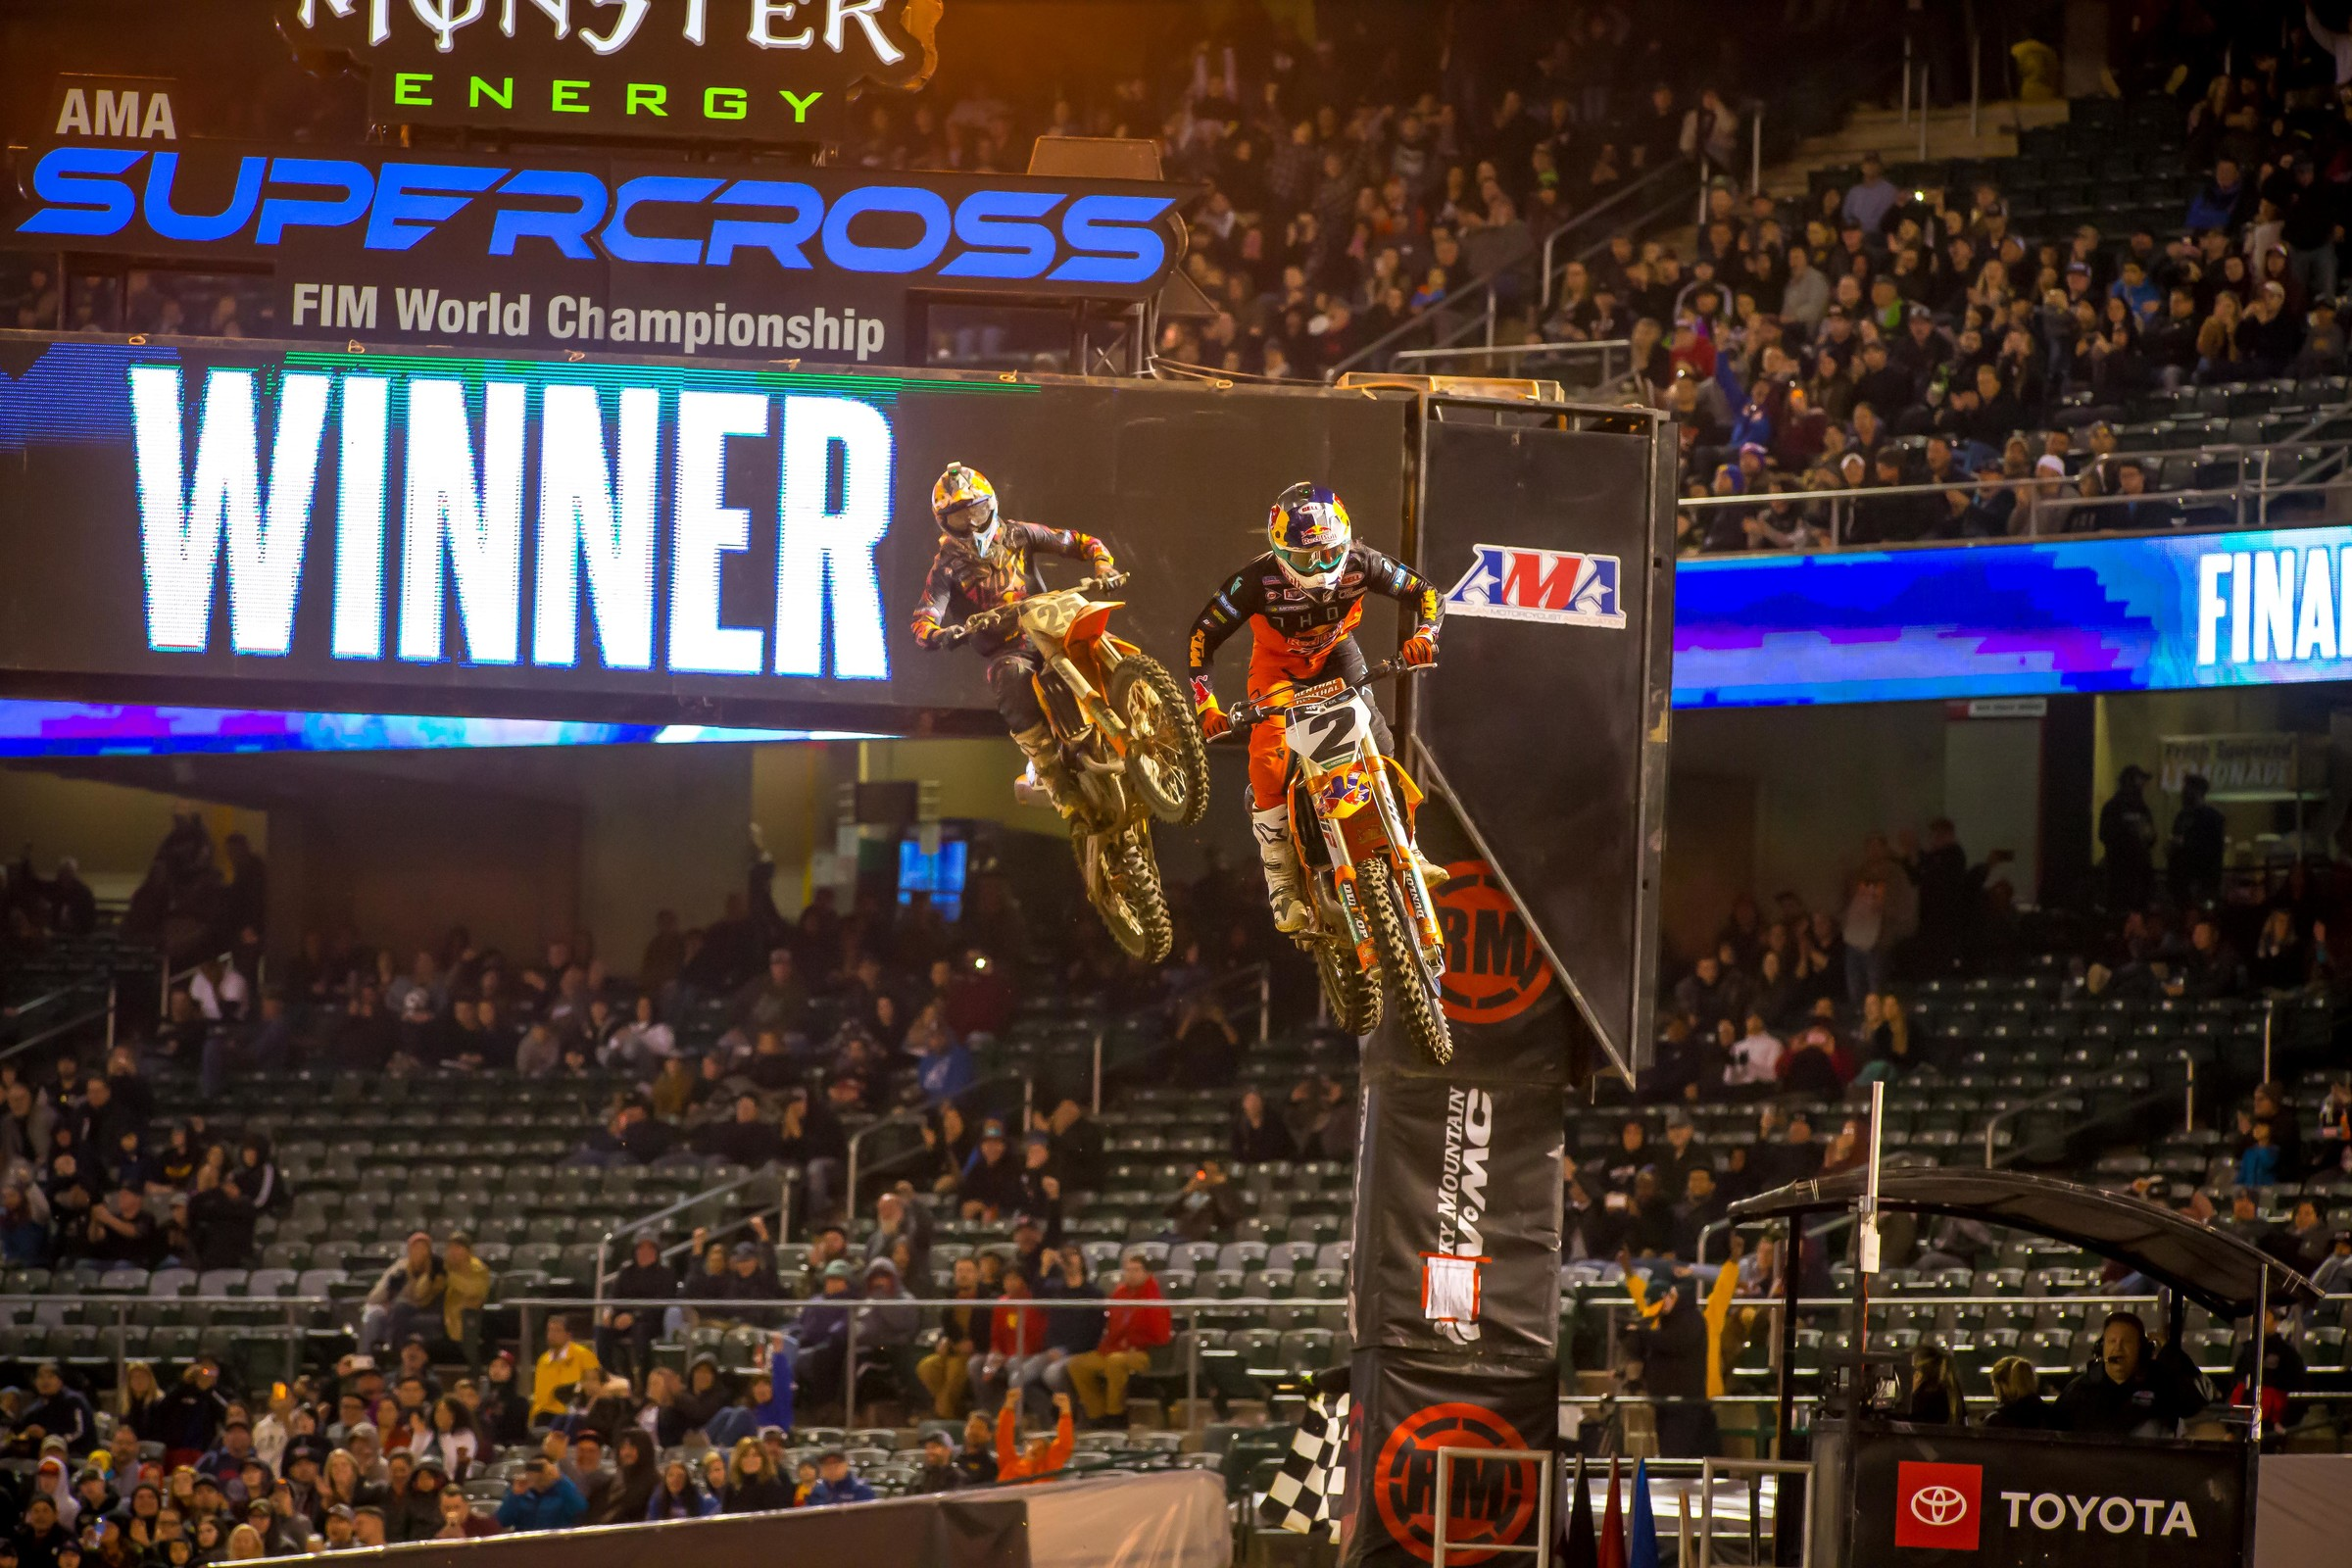 Cooper Webb was brilliant in Oakland, but Marvin Musquin nearly caught him on the final lap.